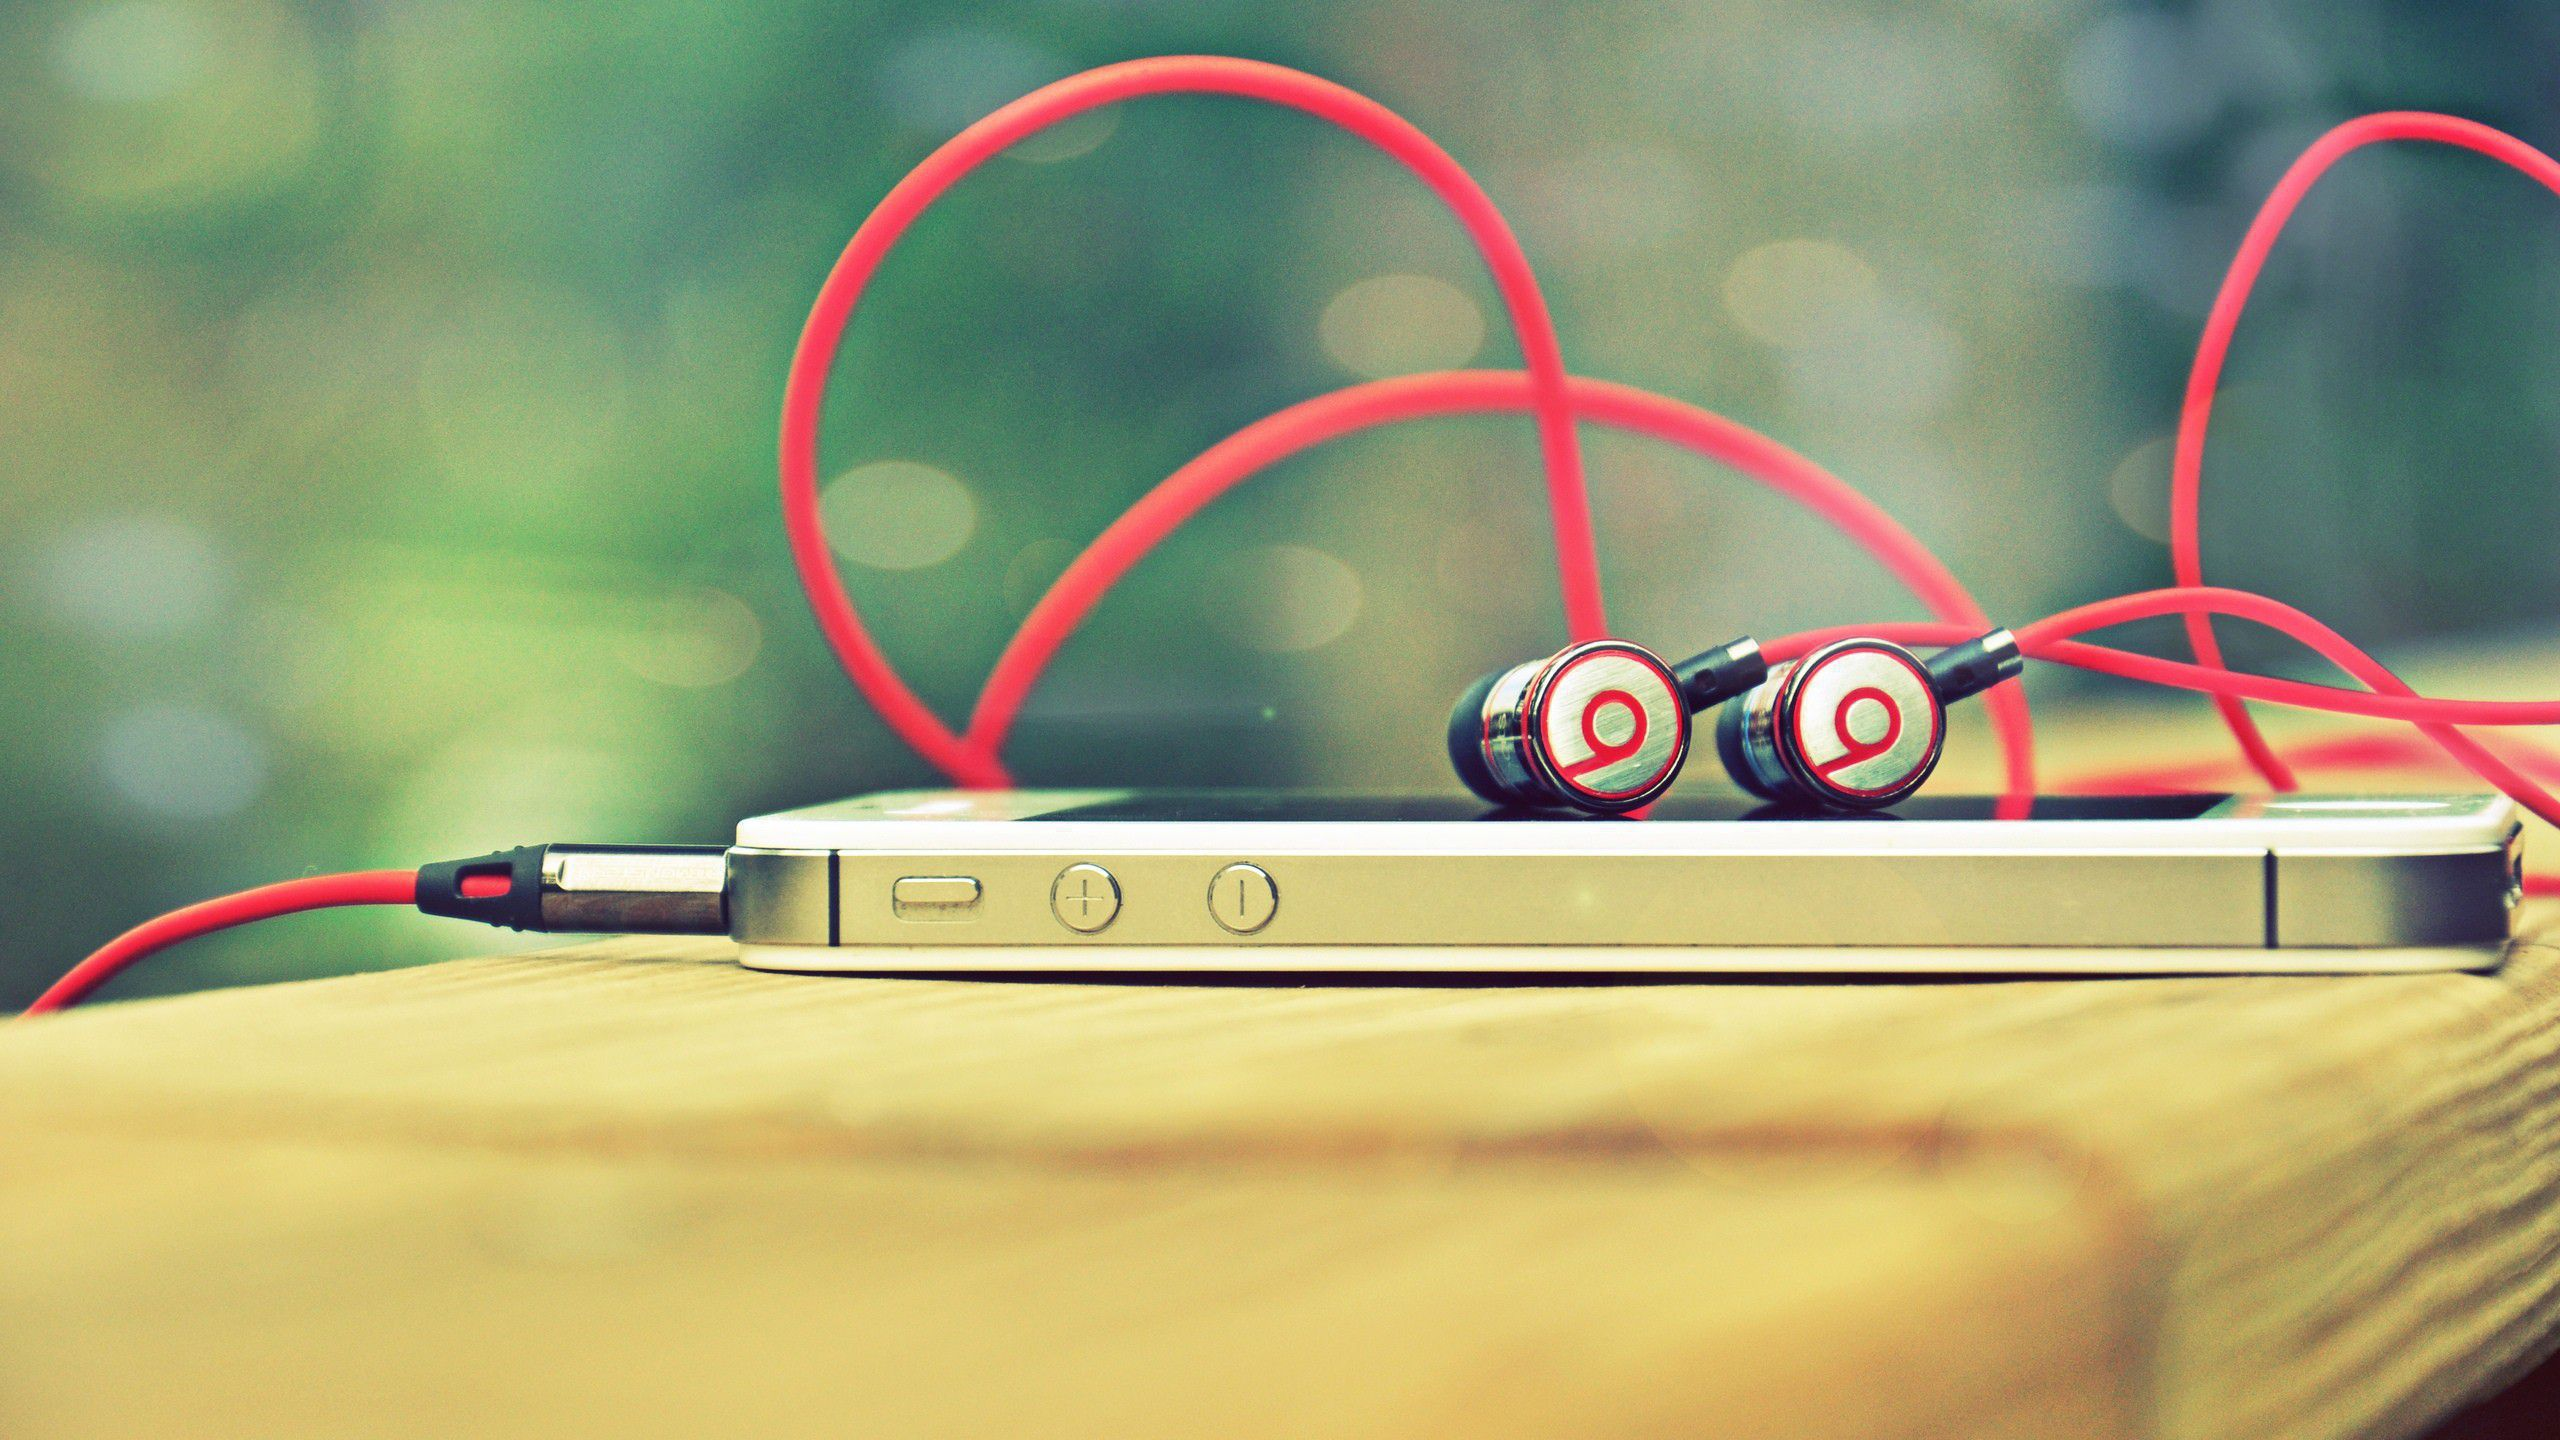 Beats By Dre Wallpaper